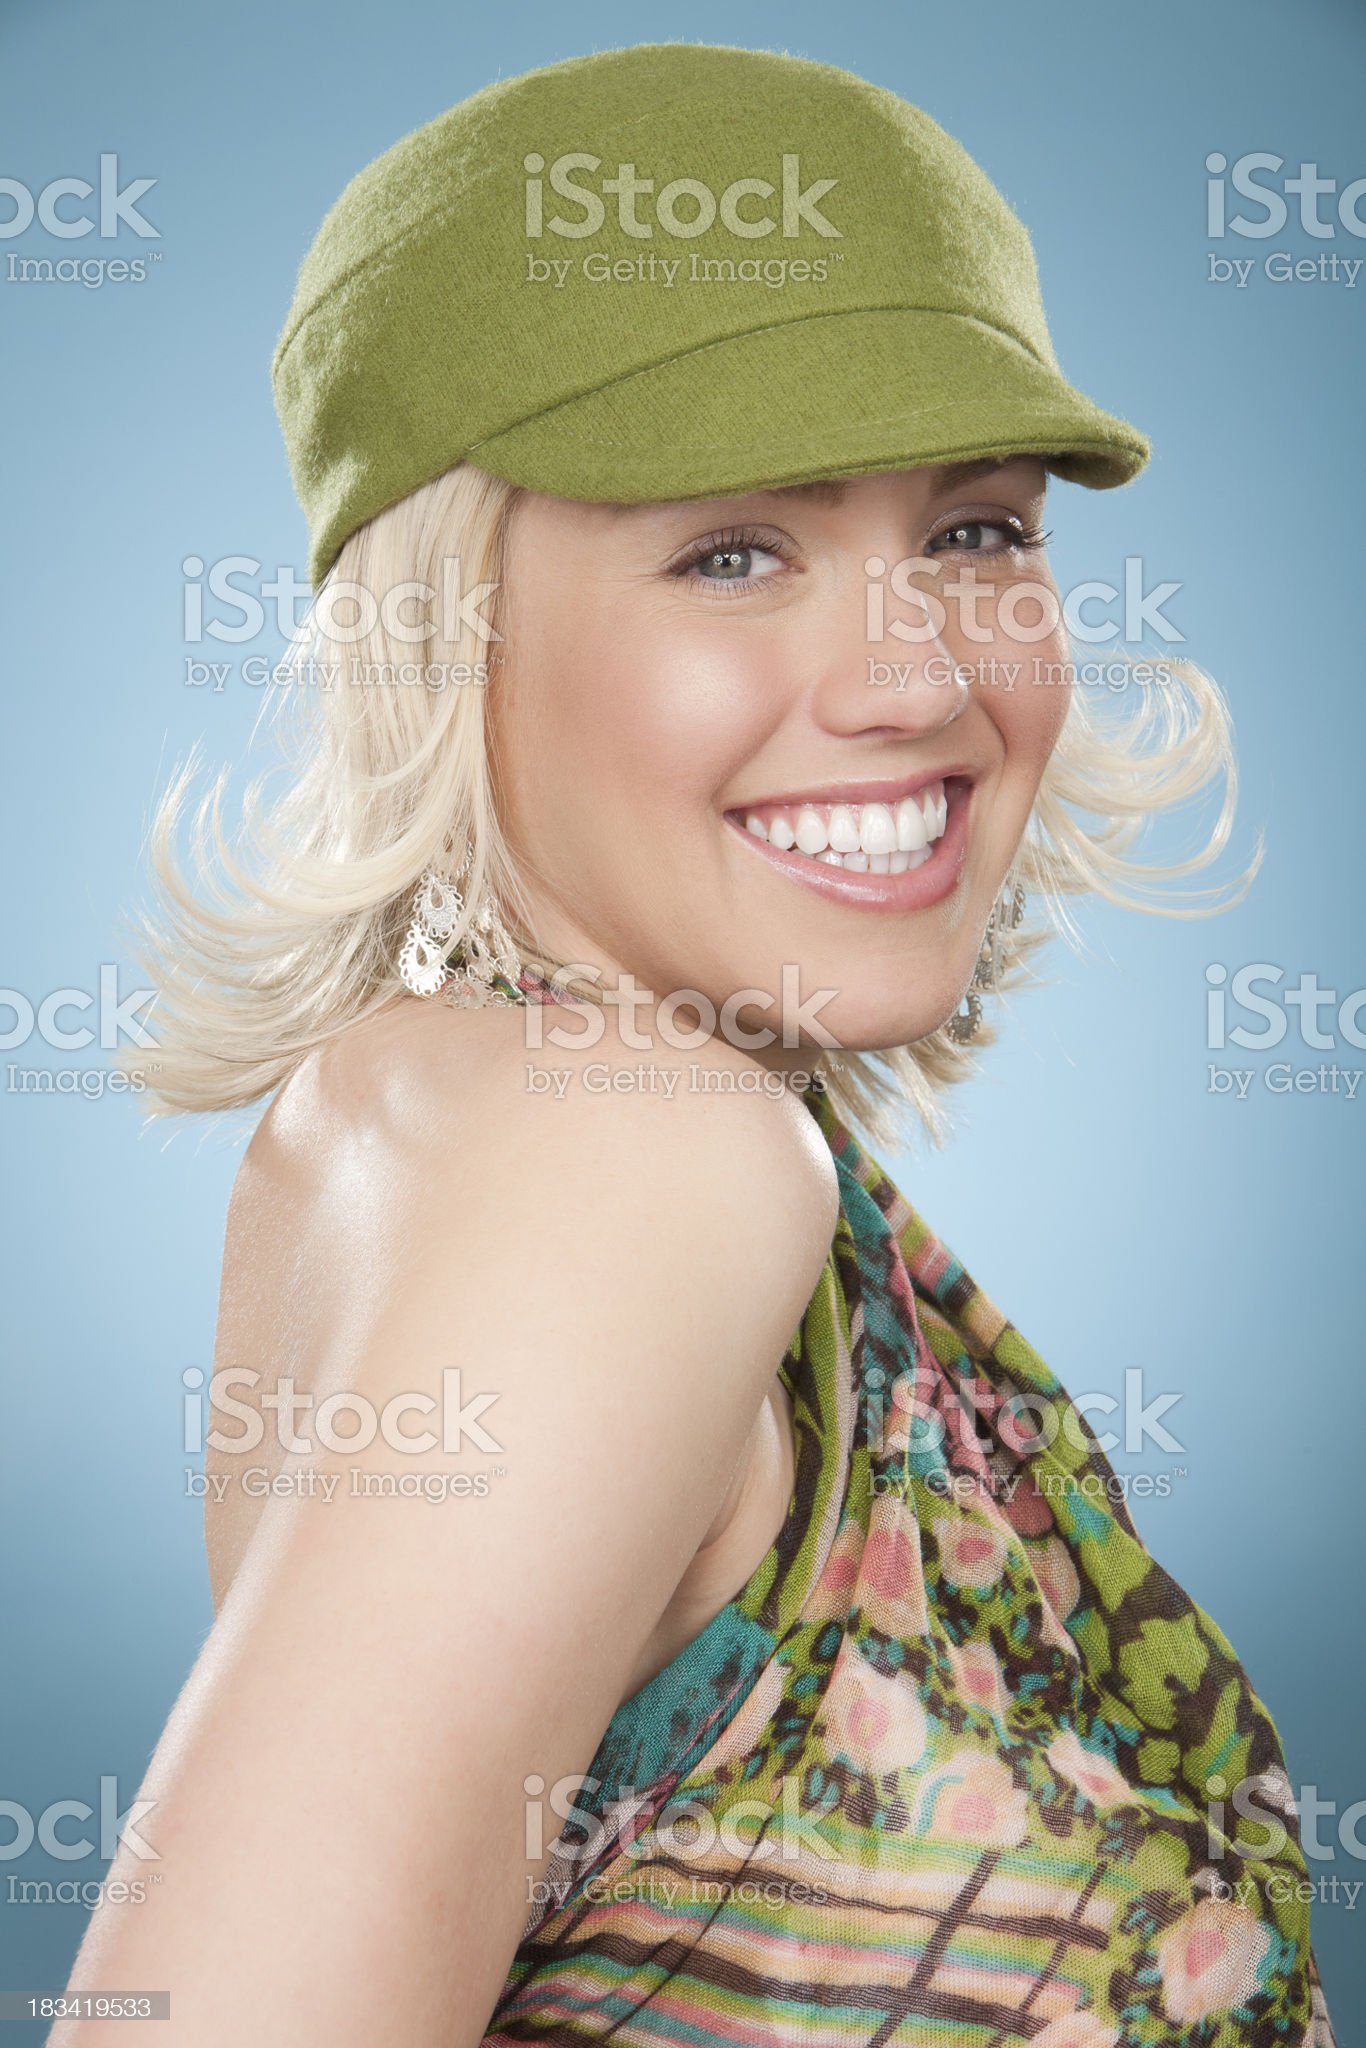 Fashion Glamour royalty-free stock photo